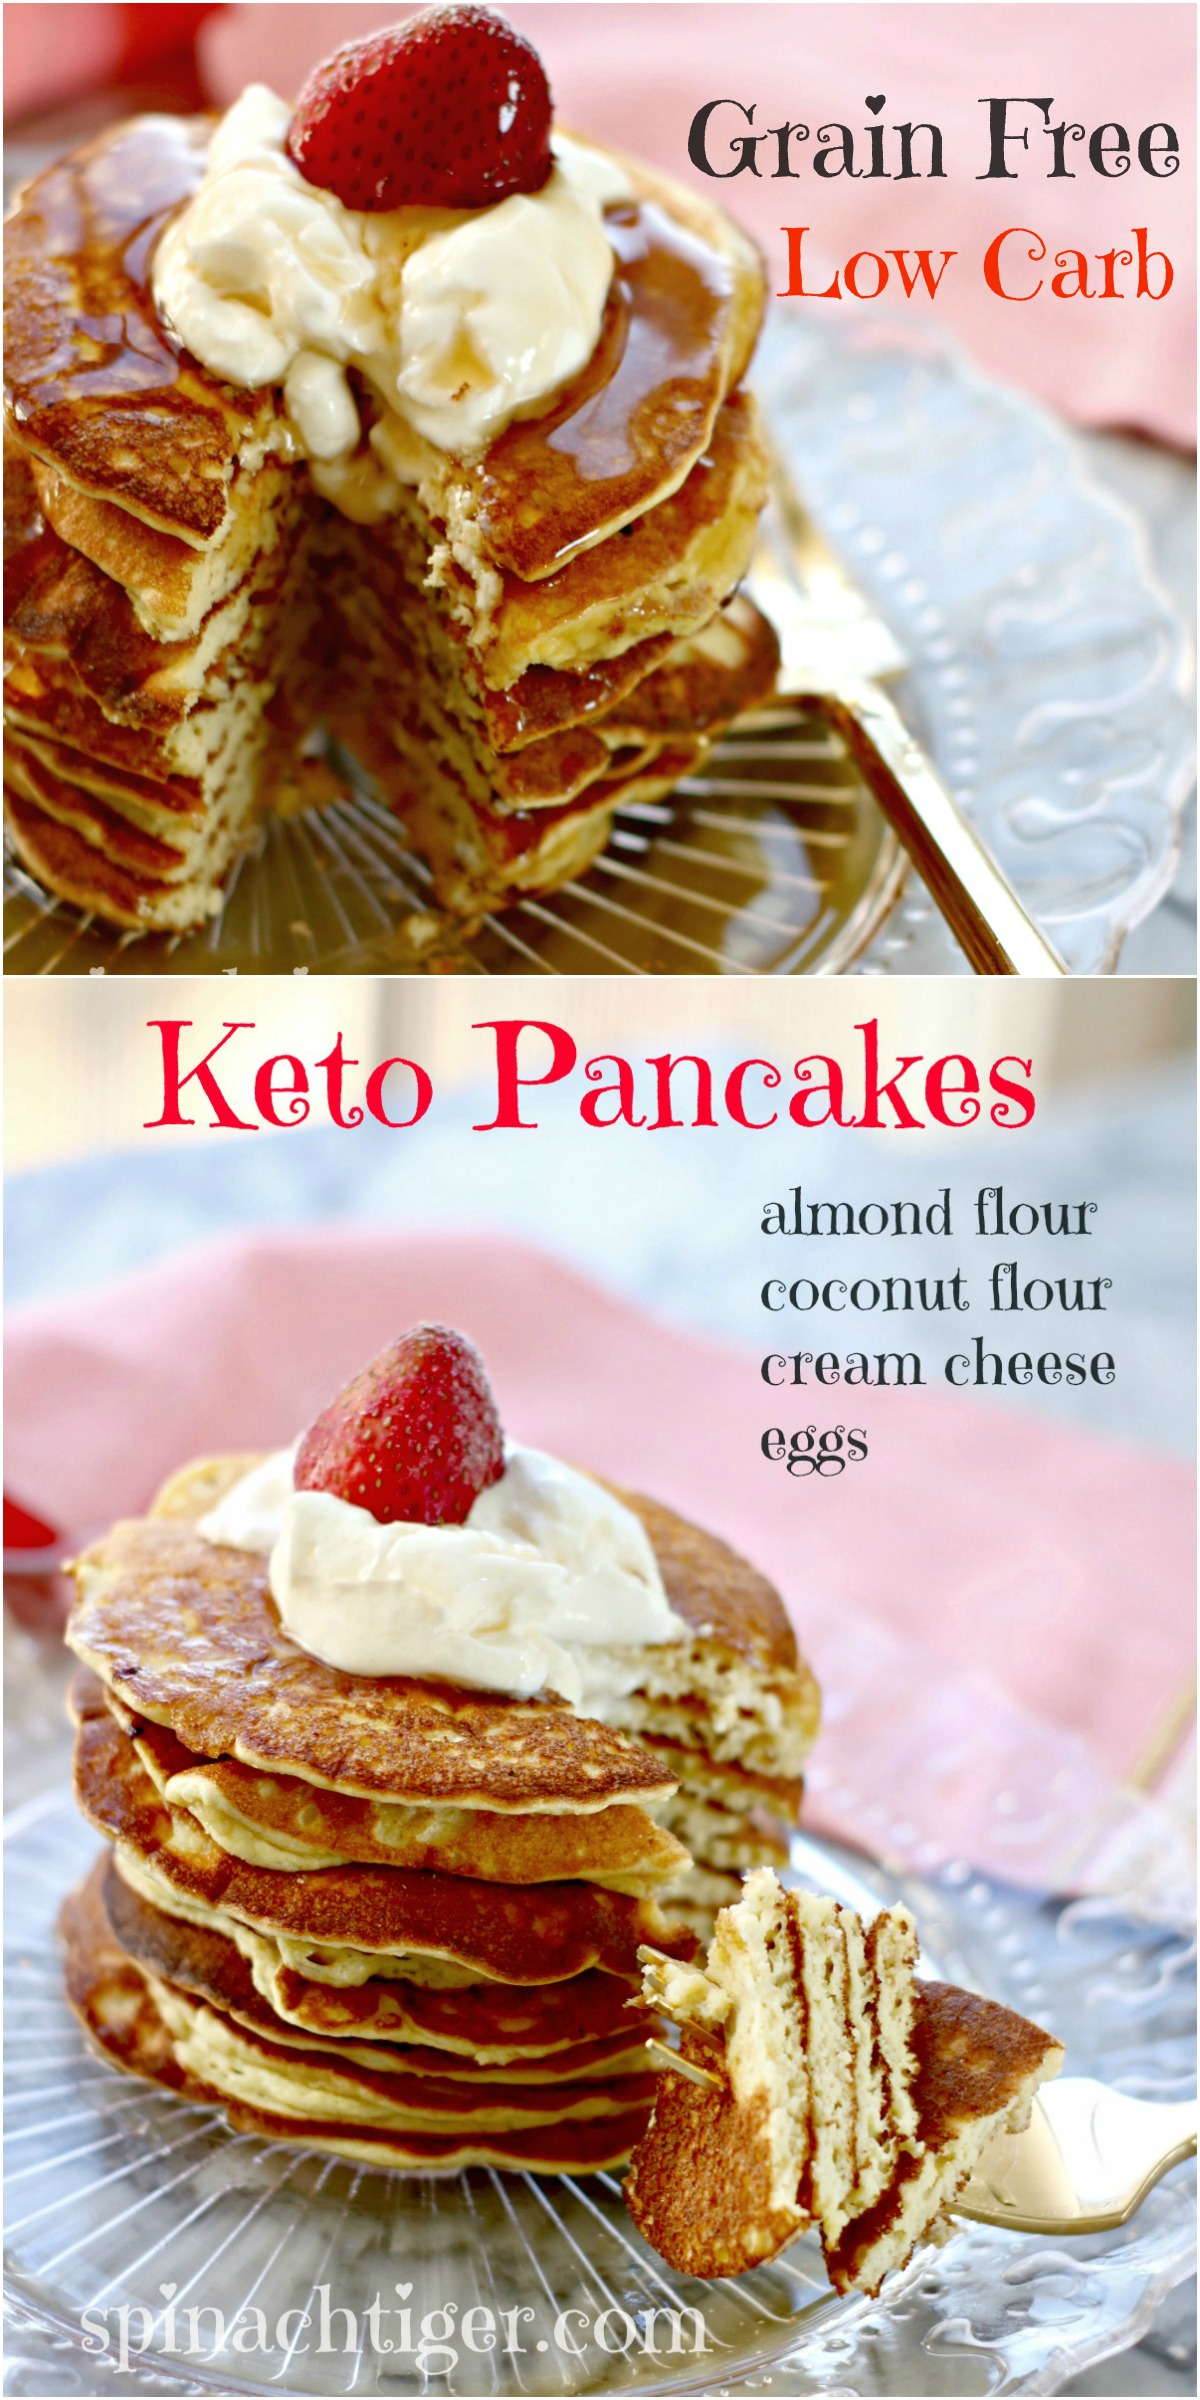 How to make fluffy pancakes grain free low carb keto spinach tiger one thing i like to do is mixed whipped cream with sour cream and add some erythritol sweetener ccuart Choice Image